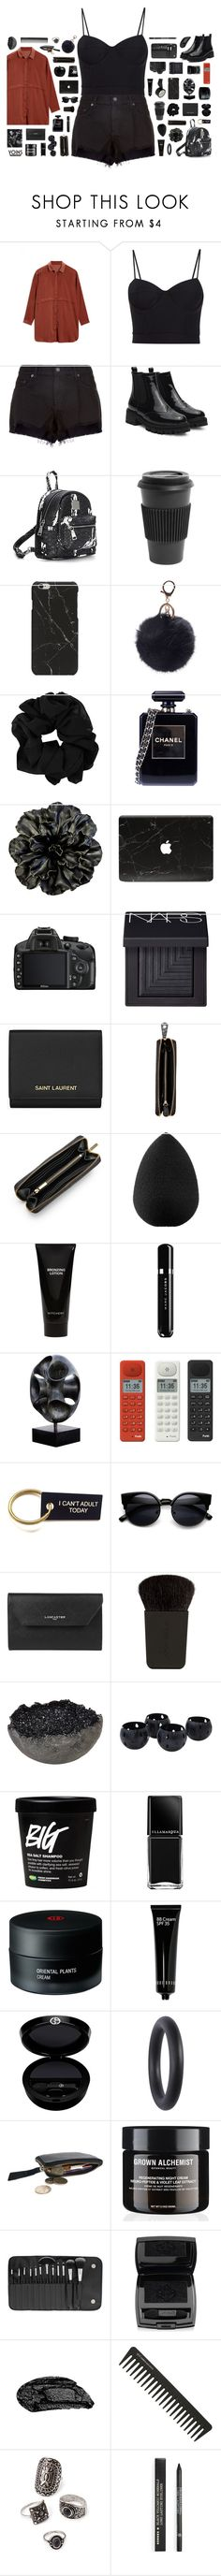 """""""Yoins // Sound"""" by blood-drops ❤ liked on Polyvore featuring Alexander Wang, rag & bone, Homage, Chanel, Sagebrook Home, Nikon, NARS Cosmetics, Yves Saint Laurent, Nomadic and Louis Vuitton"""